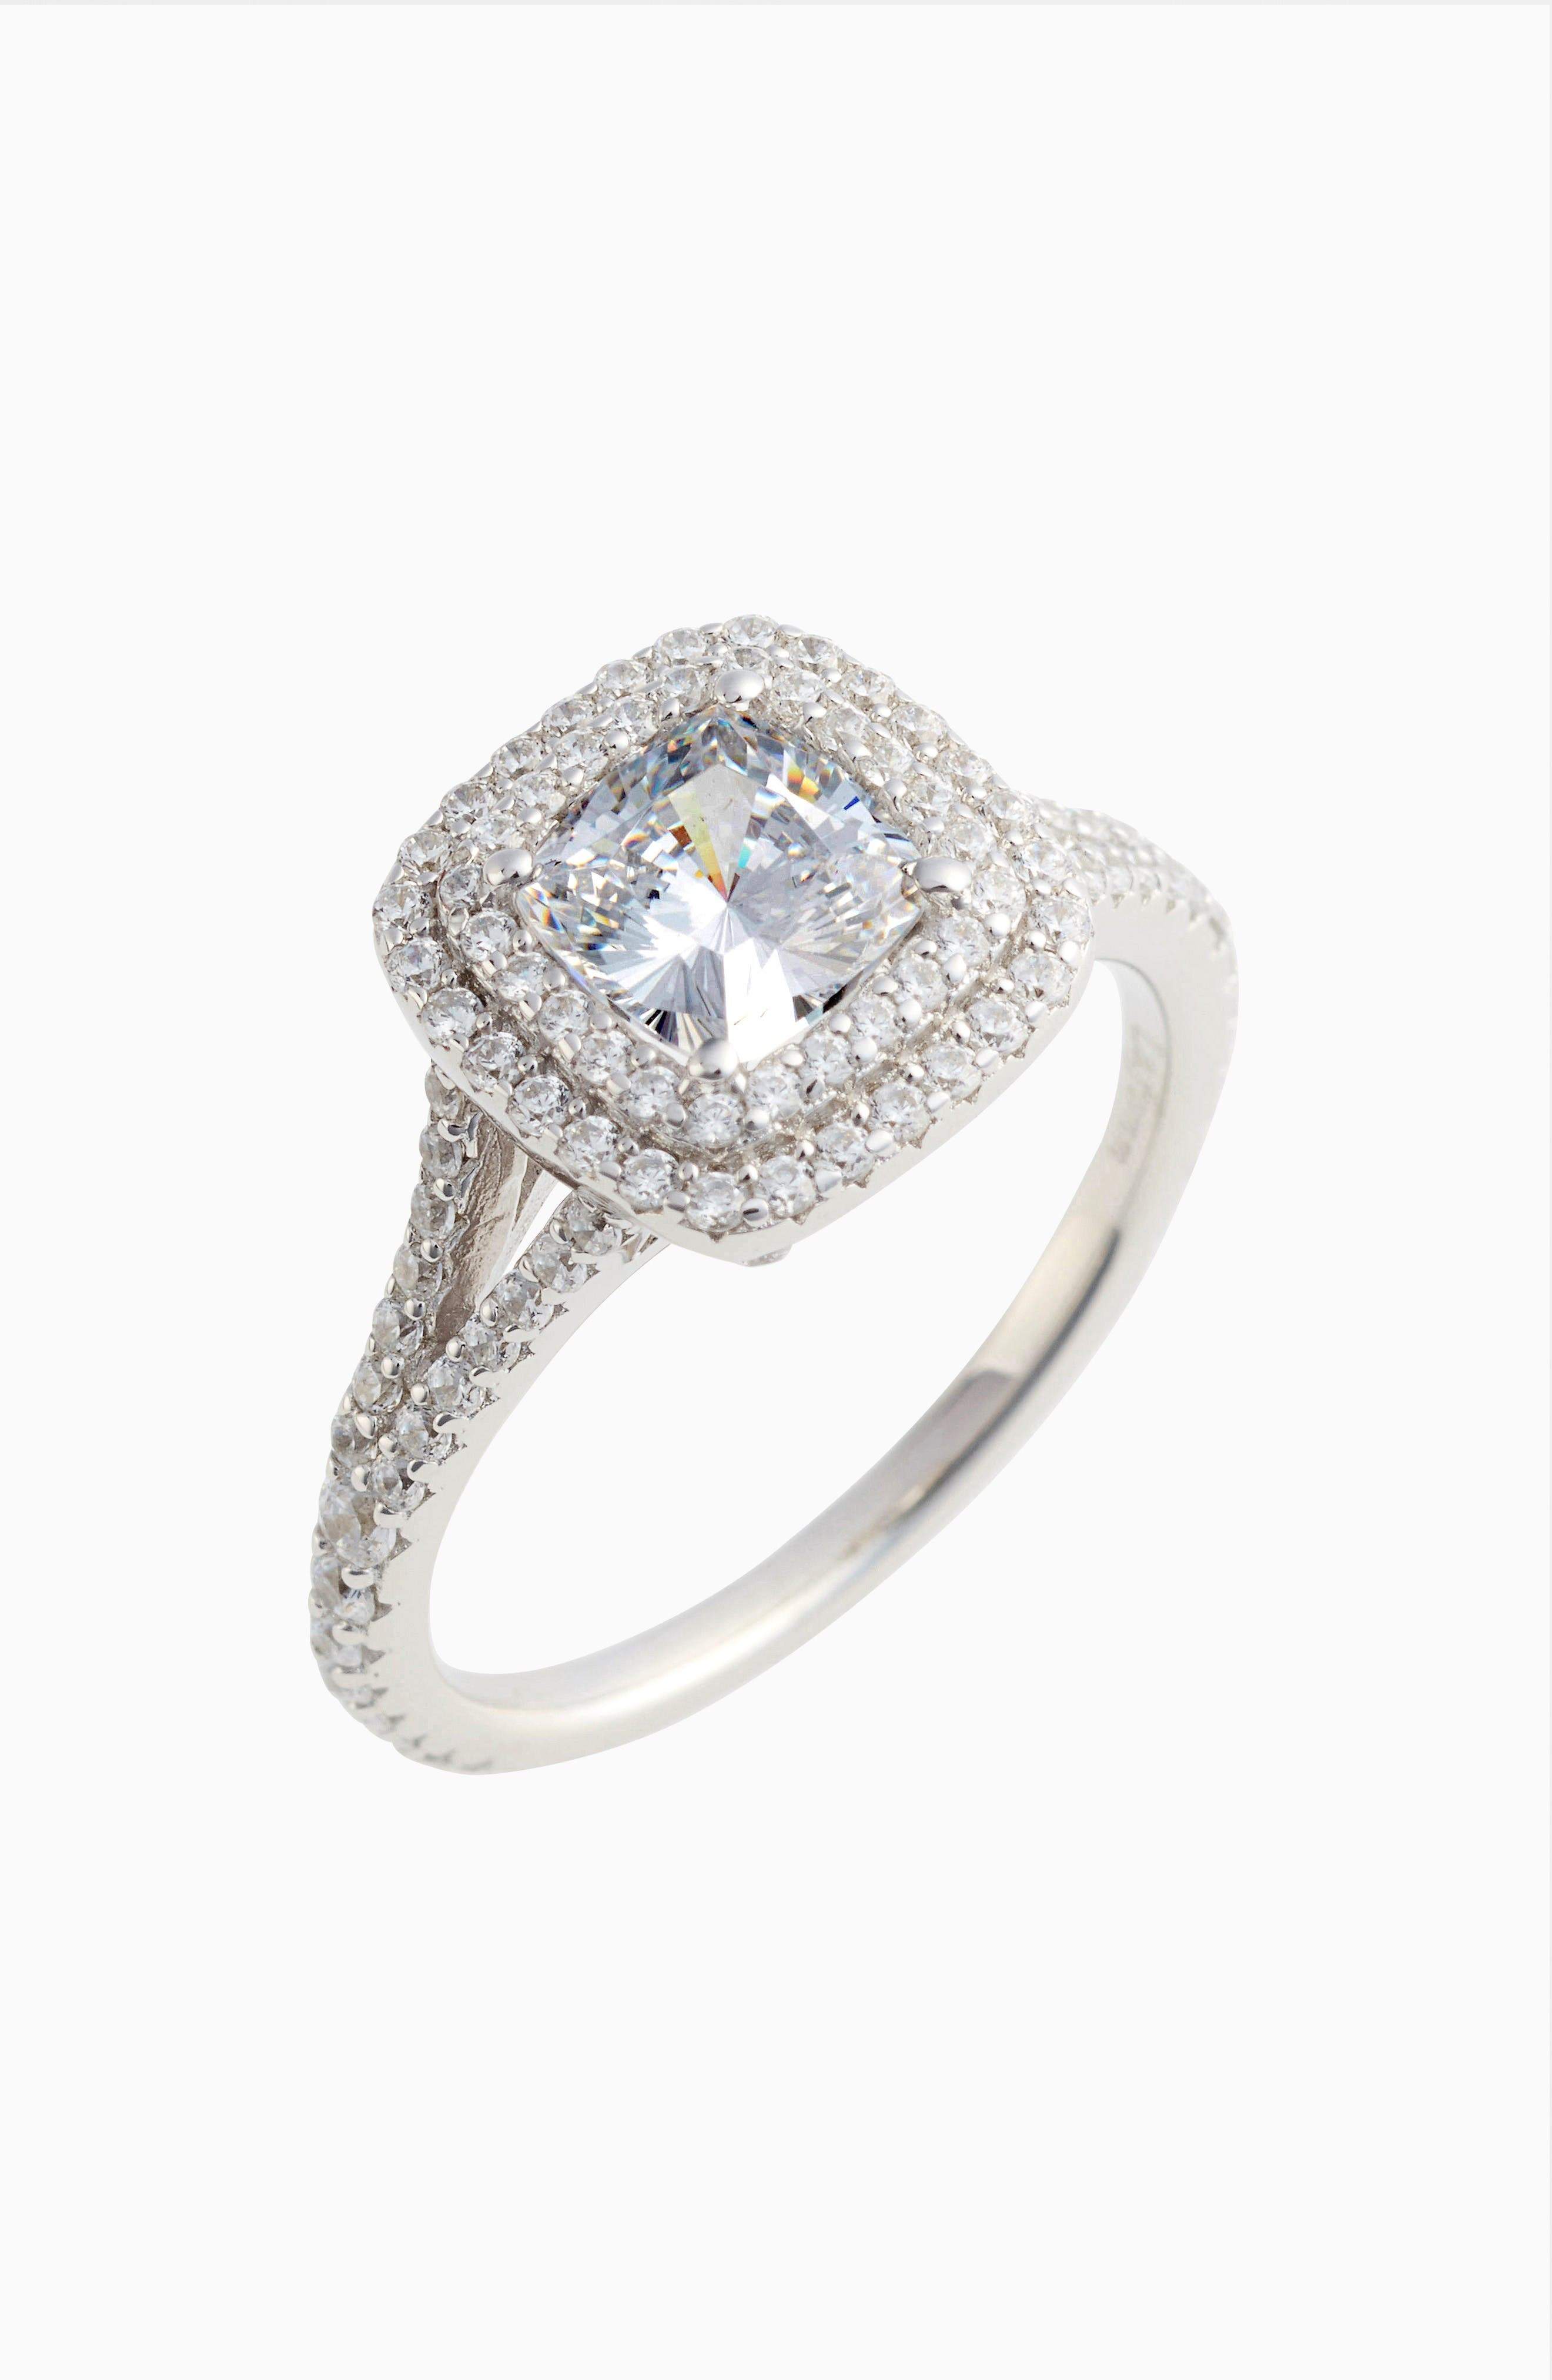 Double Halo Simulated Diamond Ring,                         Main,                         color, Silver